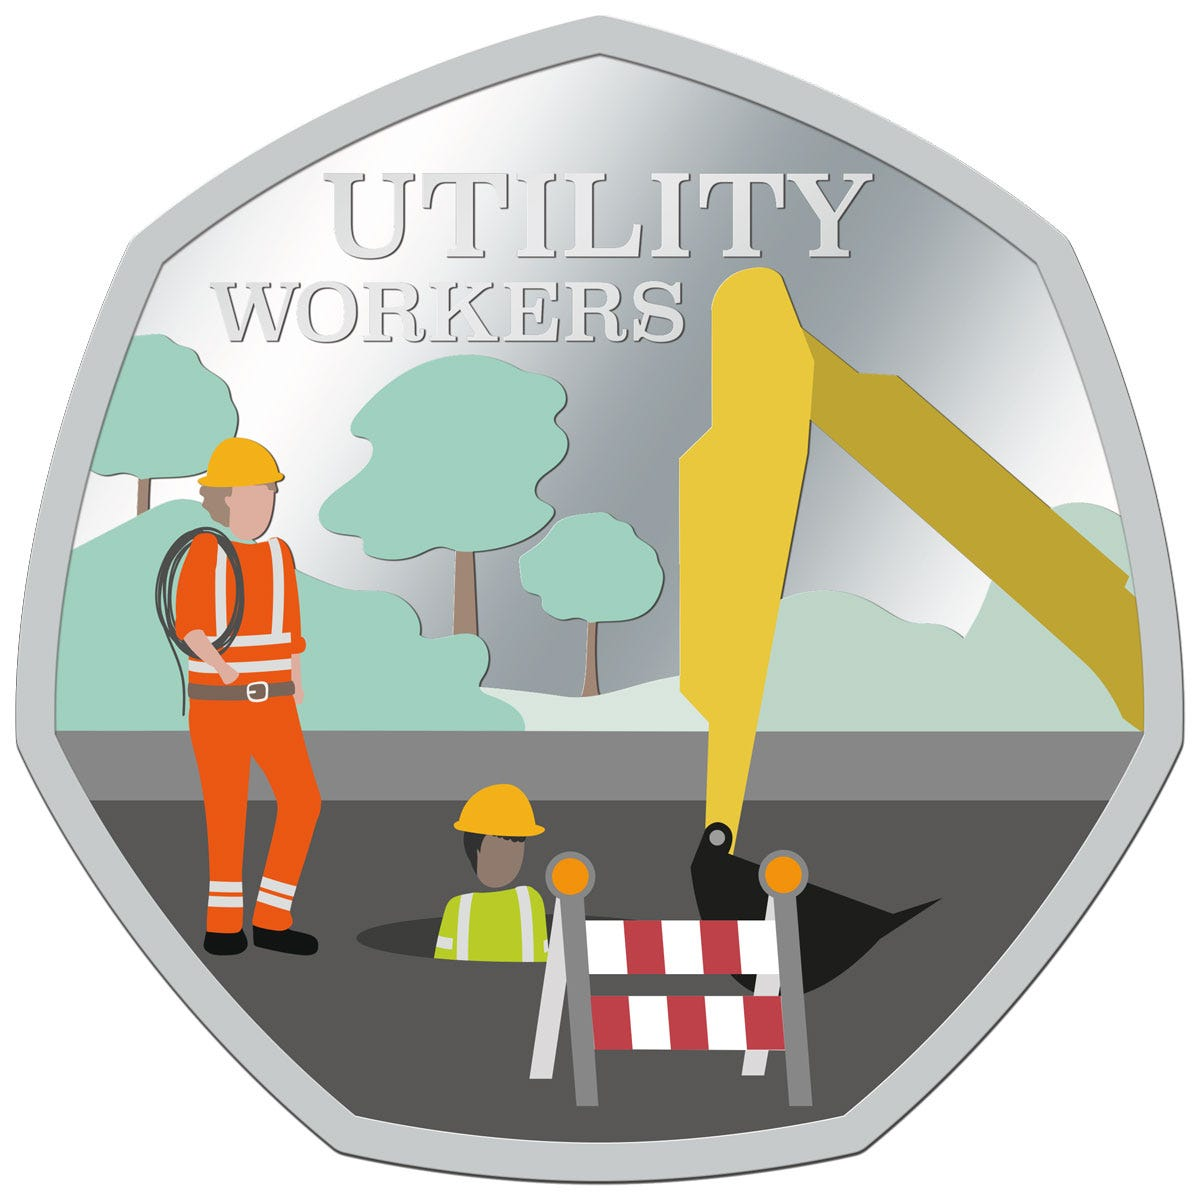 Thank-you Utility Workers